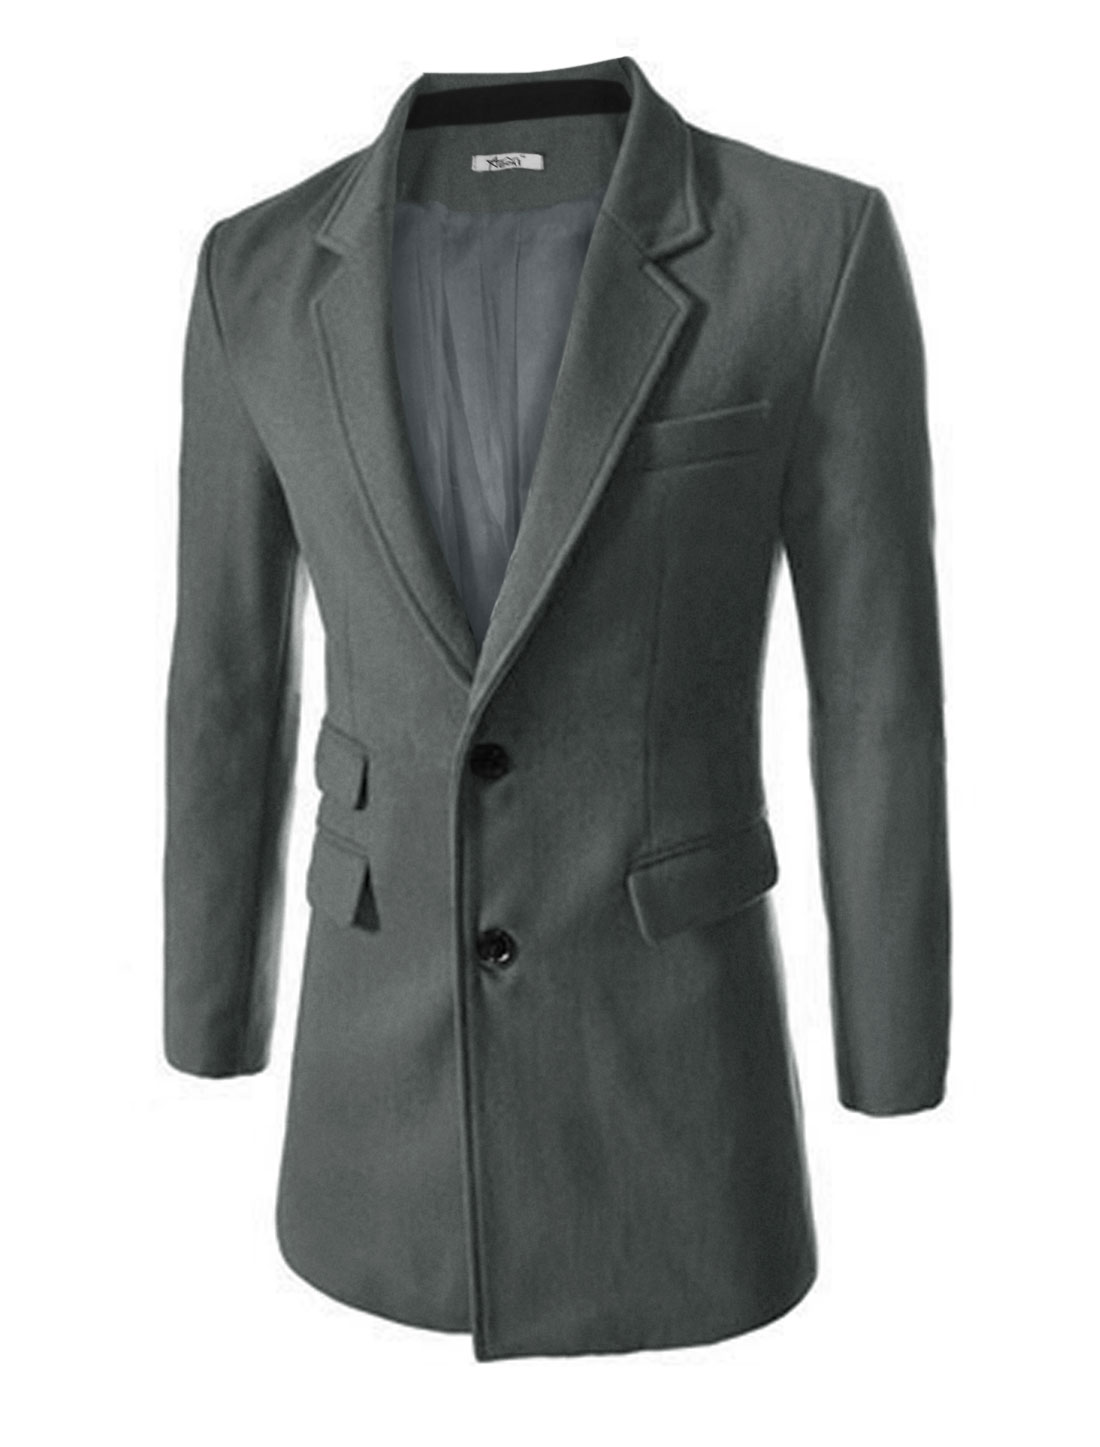 Men Notched Lapel Two Welt Pockets Front Cozy fit Worsted Trench Coat Dark Gray M